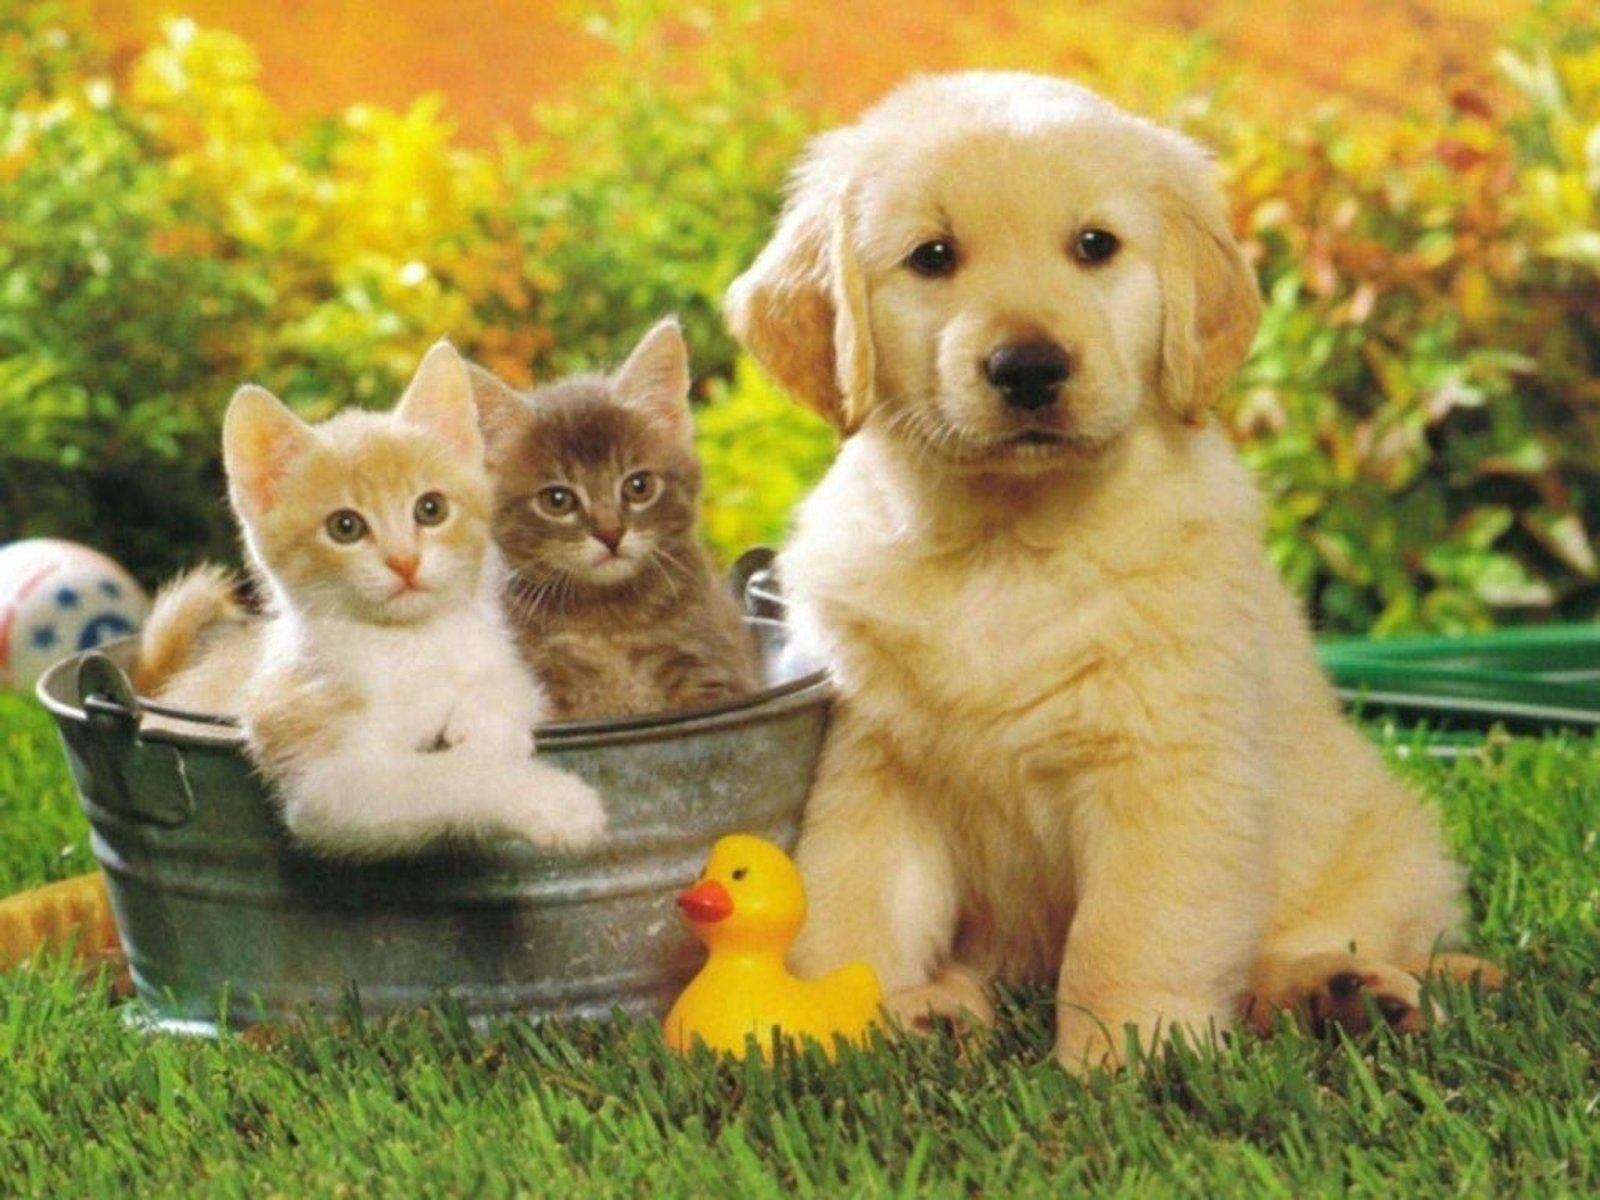 10 New Cute Puppies And Kittens Wallpaper Full Hd 1080p For Pc Background In 2020 Cute Puppies And Kittens Cute Animals Kittens And Puppies